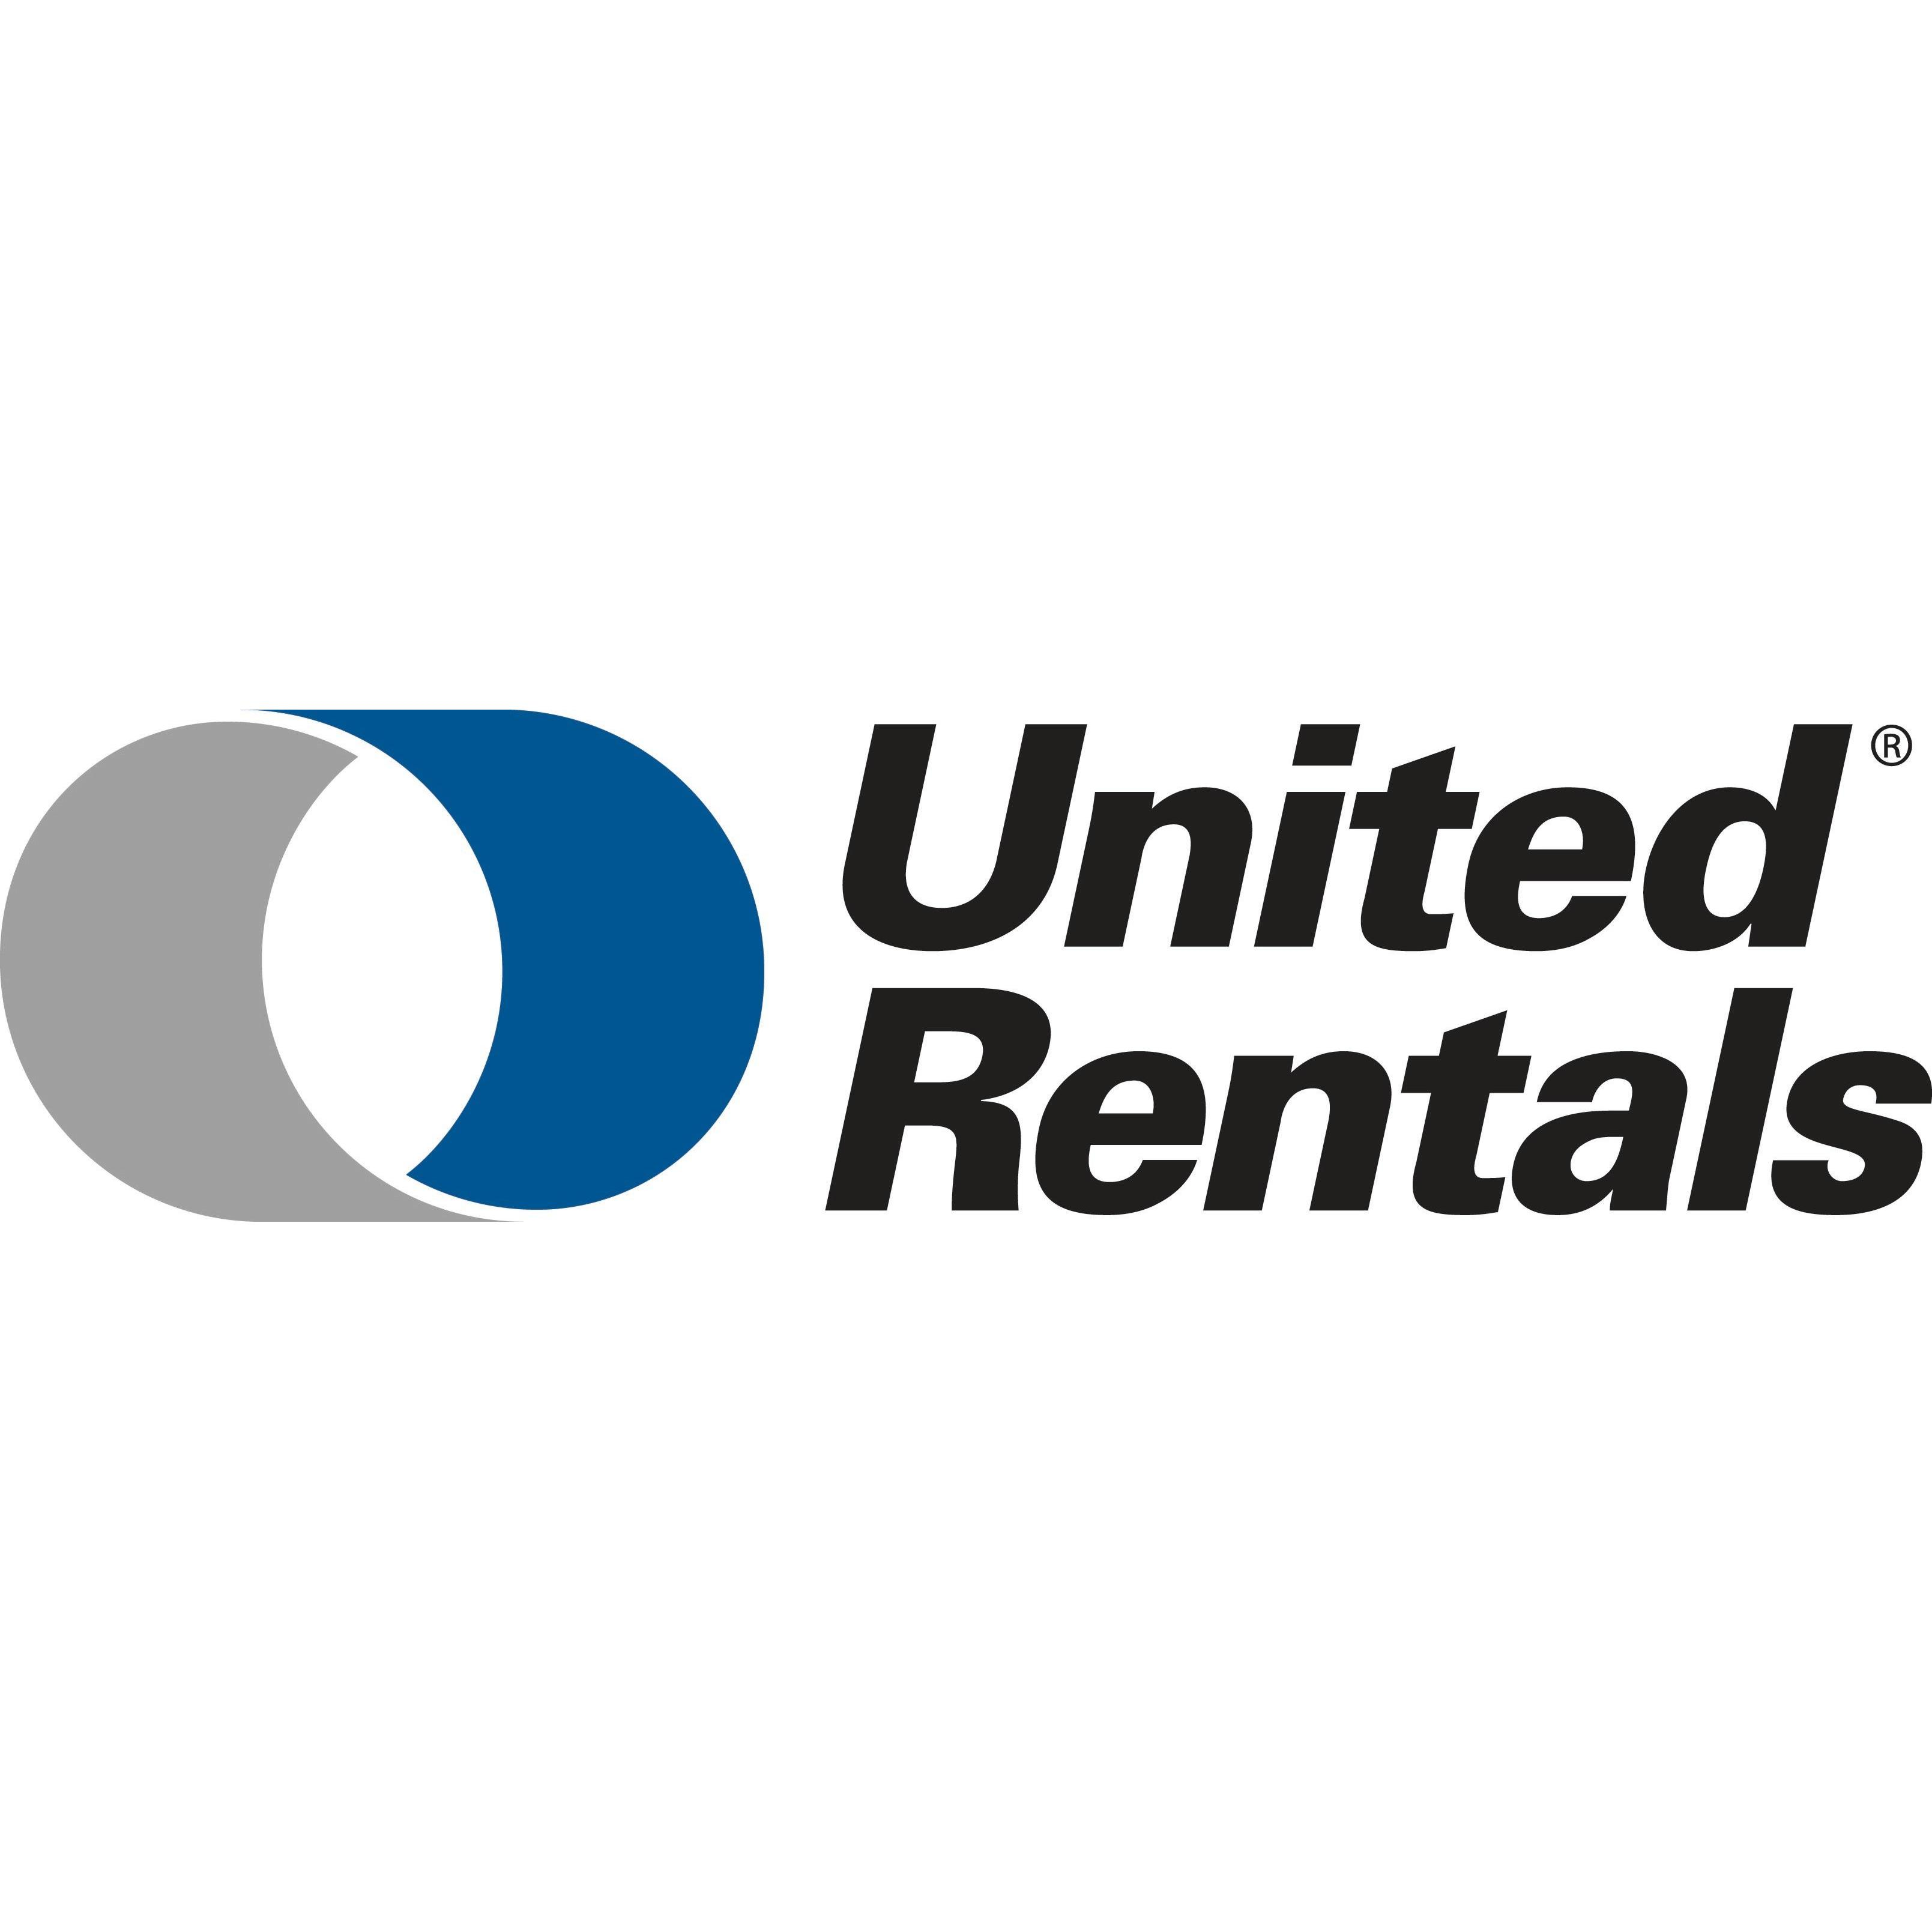 United Rentals - Fluid Solutions: Pumps, Tanks, Filtration